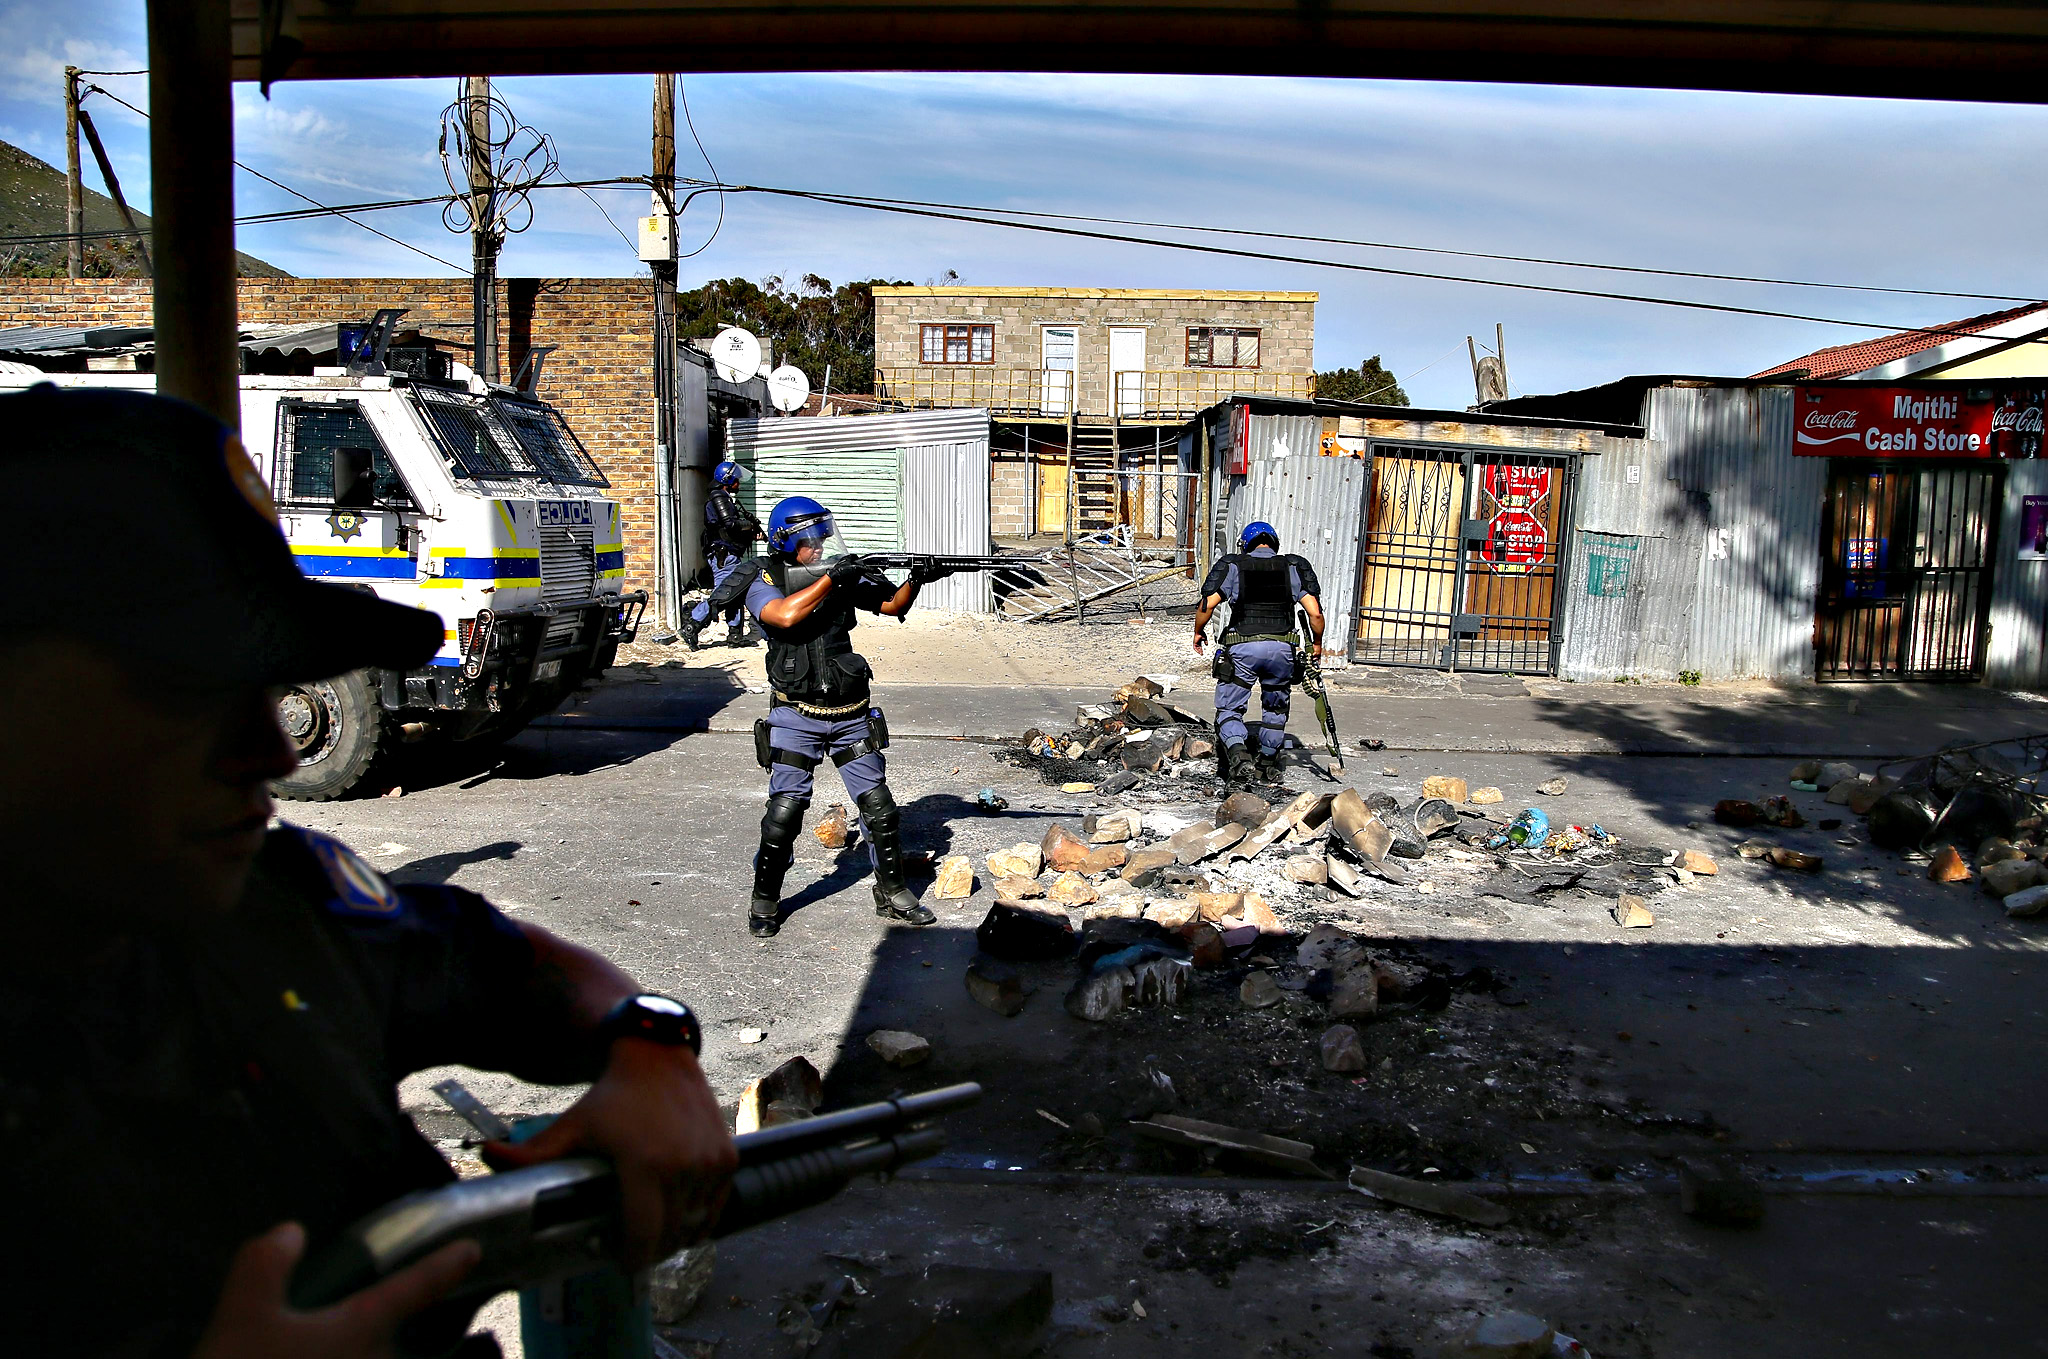 South African police fire rubber bullets to disperse residents of Masiphumelele during a protest against the police in Masiphumelele, Cape Town, South Africa  23 October 2015. Community members are angered at the arrest of some residents suspected to be vigilantes following the killing of suspected criminals by vigilantes. This follows weeks of protests over the lack of policing in the impoverished area and the alleged targetting of vigilante members by the police